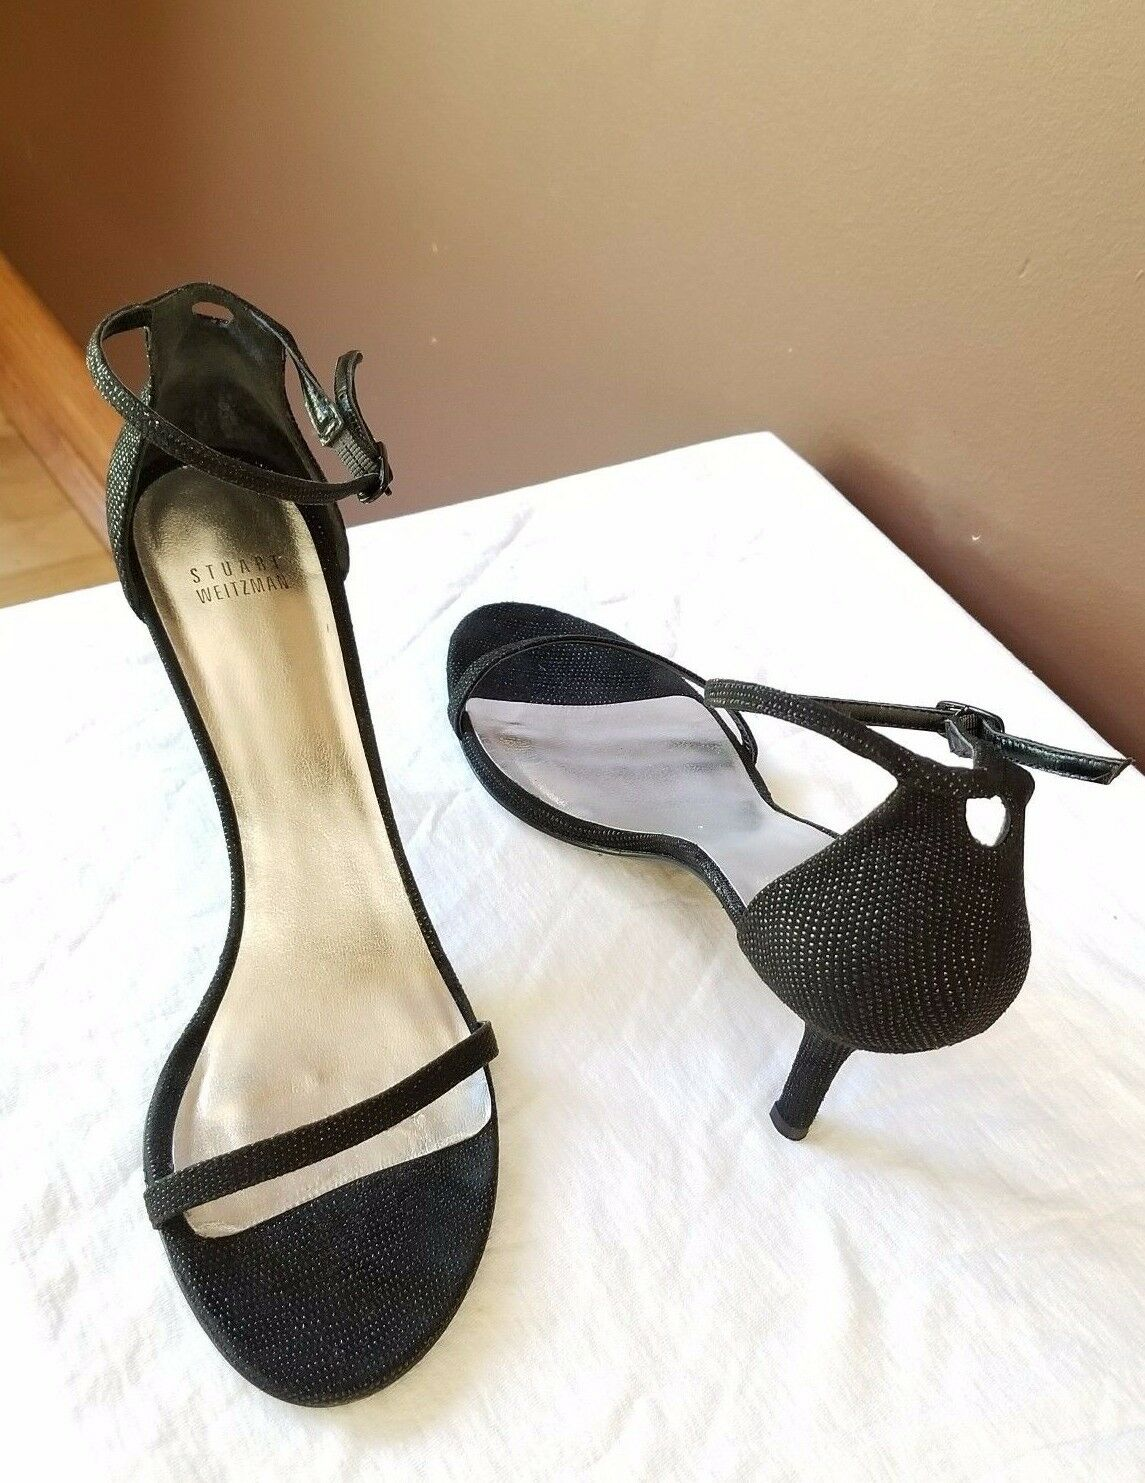 Stuart Weitzman black dress up sandals, Sz 10.5 M